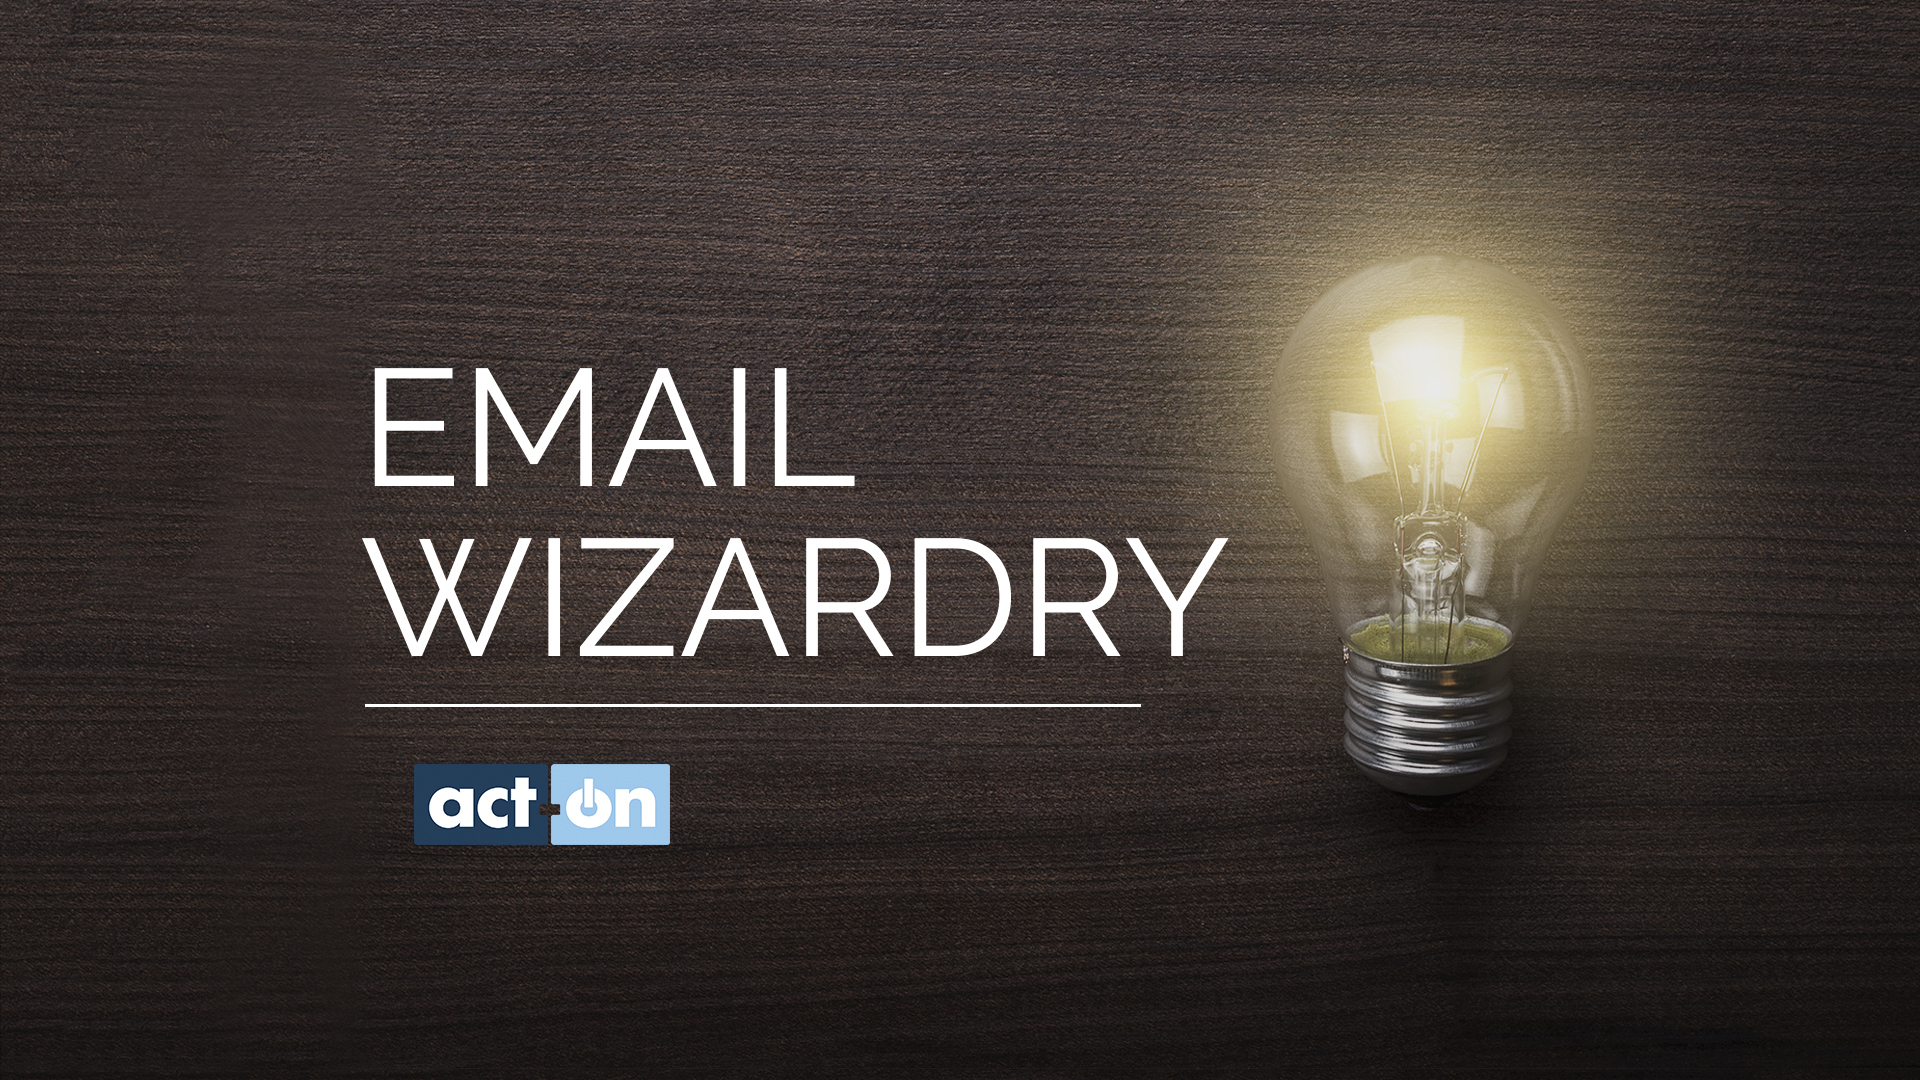 Email Wizardry Quick Tips Video from Act-On